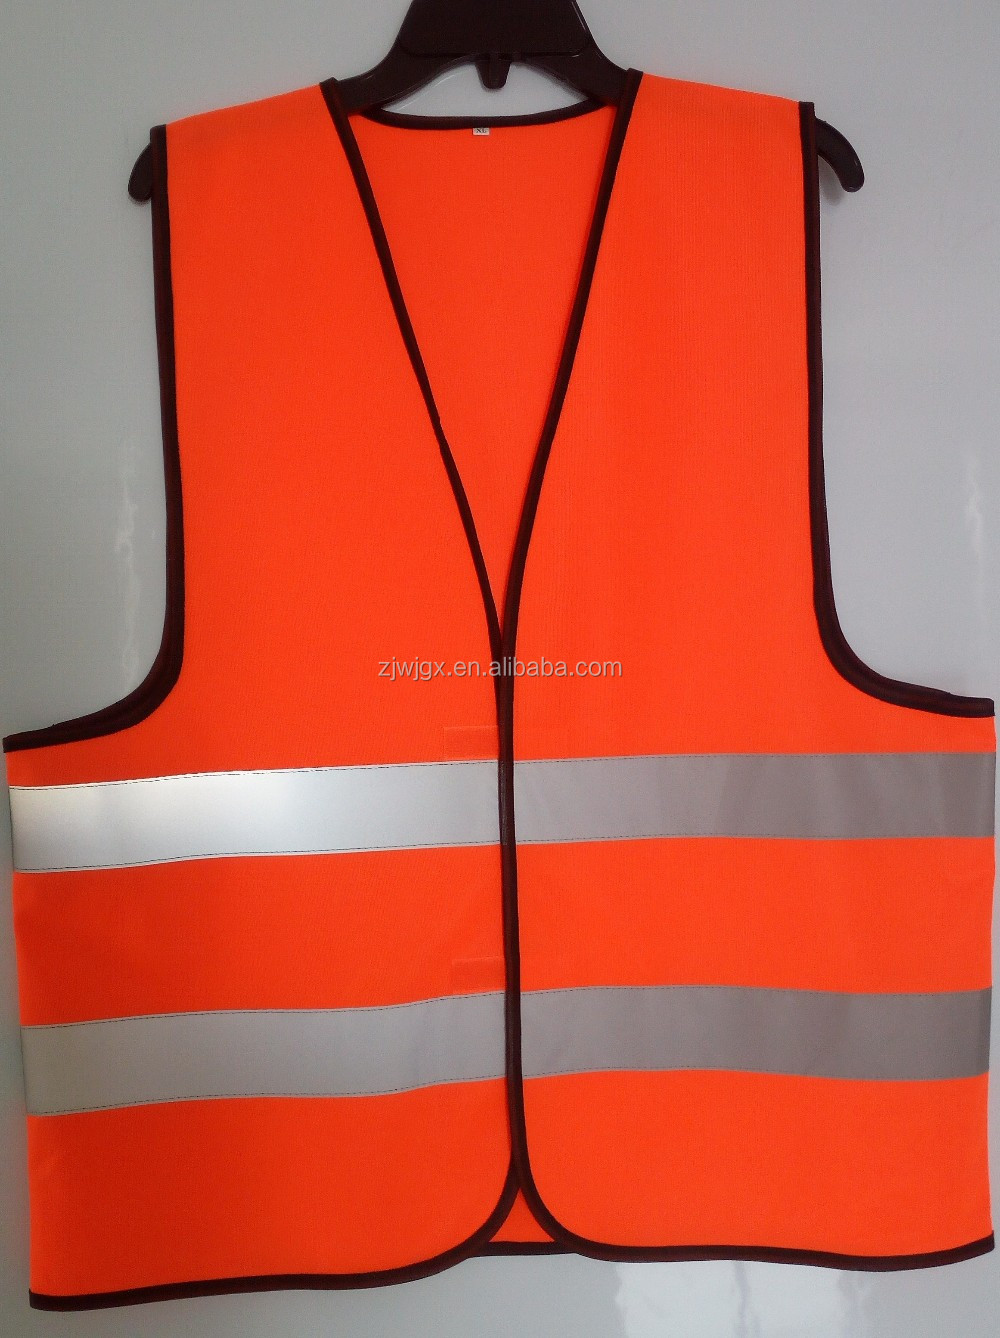 Orange safety coats conforms to EN ISO 20471